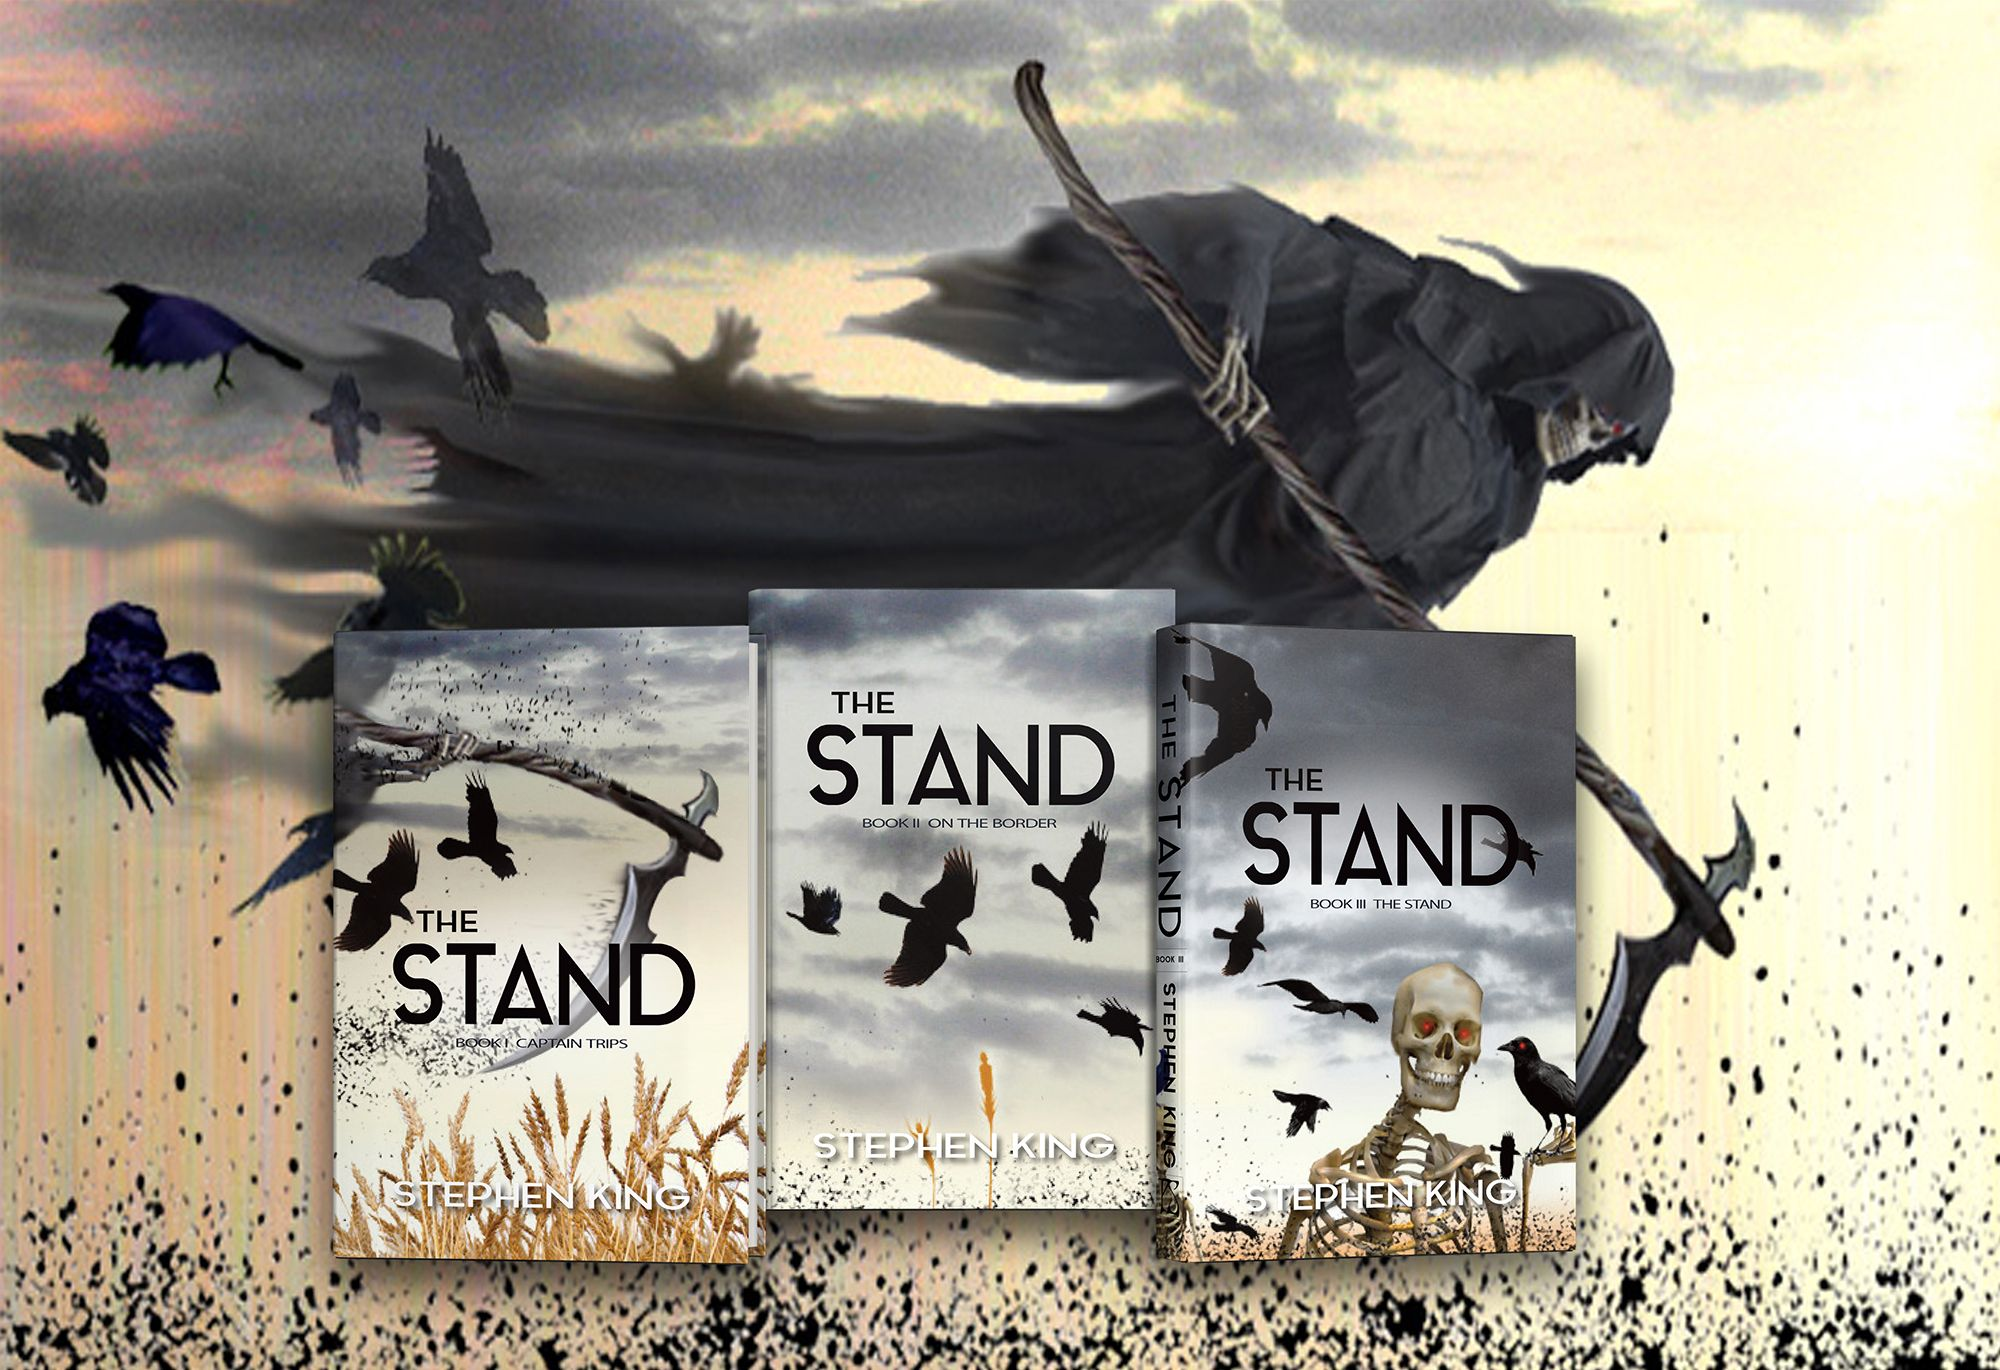 Stephen King The Stand recruits characters for upcoming mini-series